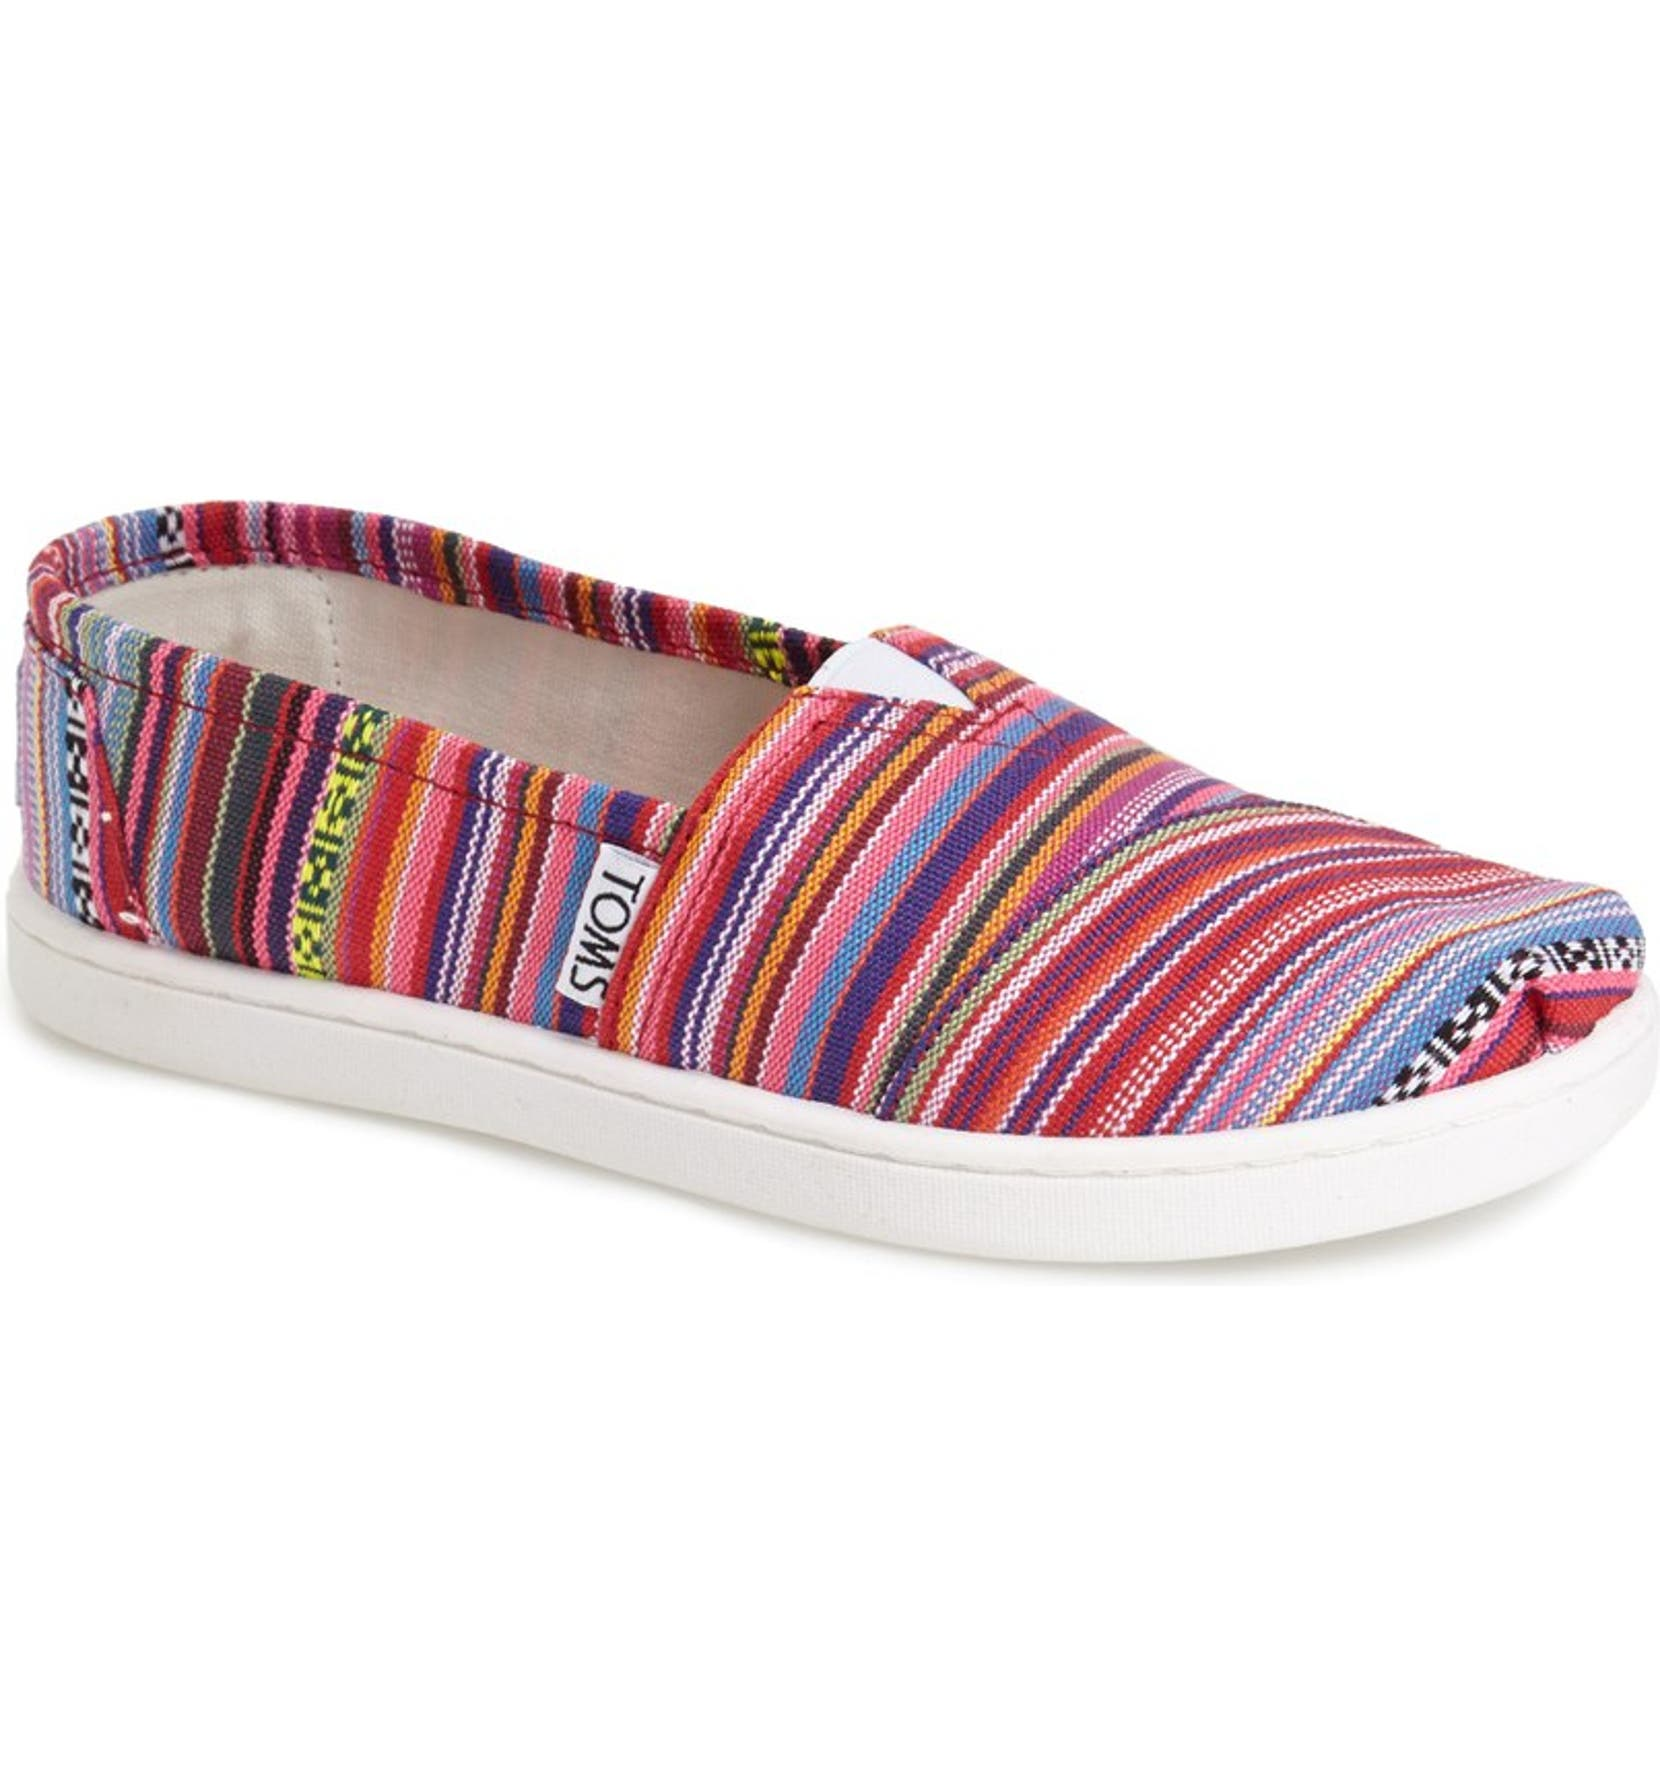 840ae0c69 TOMS 'Classic Youth - Rainbow' Slip-On (Toddler, Little Kid & Big Kid)    Nordstrom